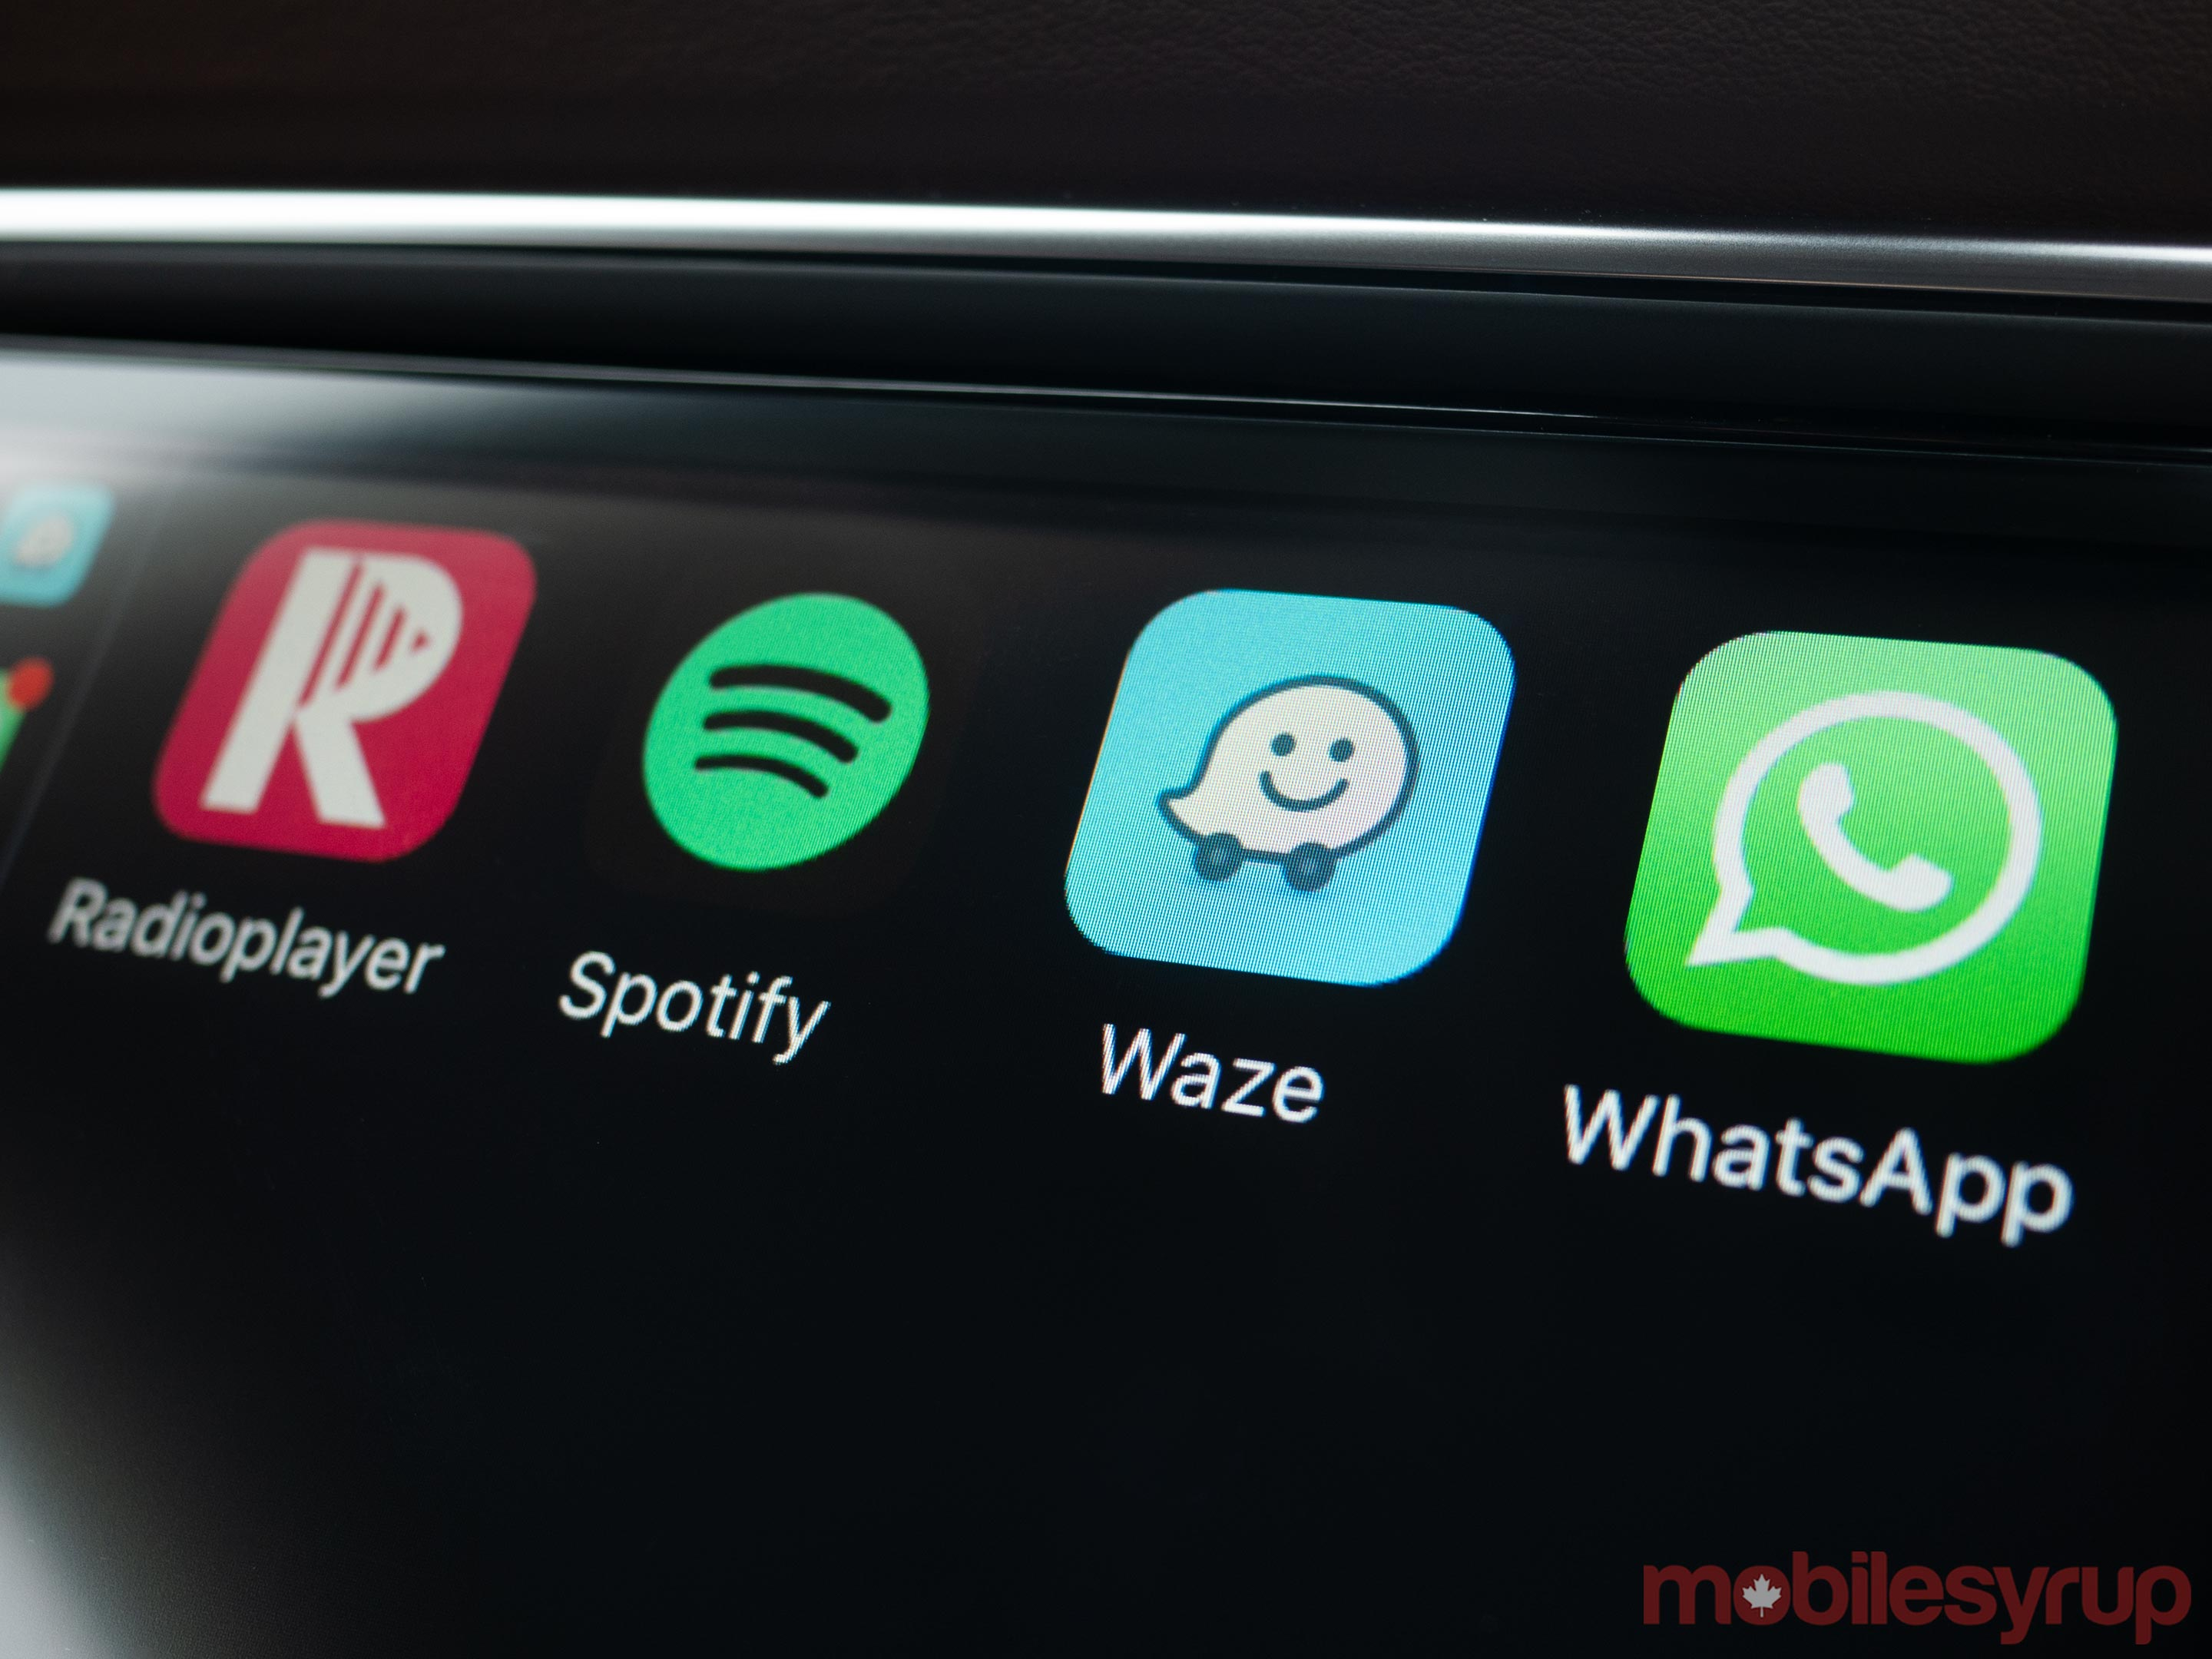 Waze CarPlay app icon